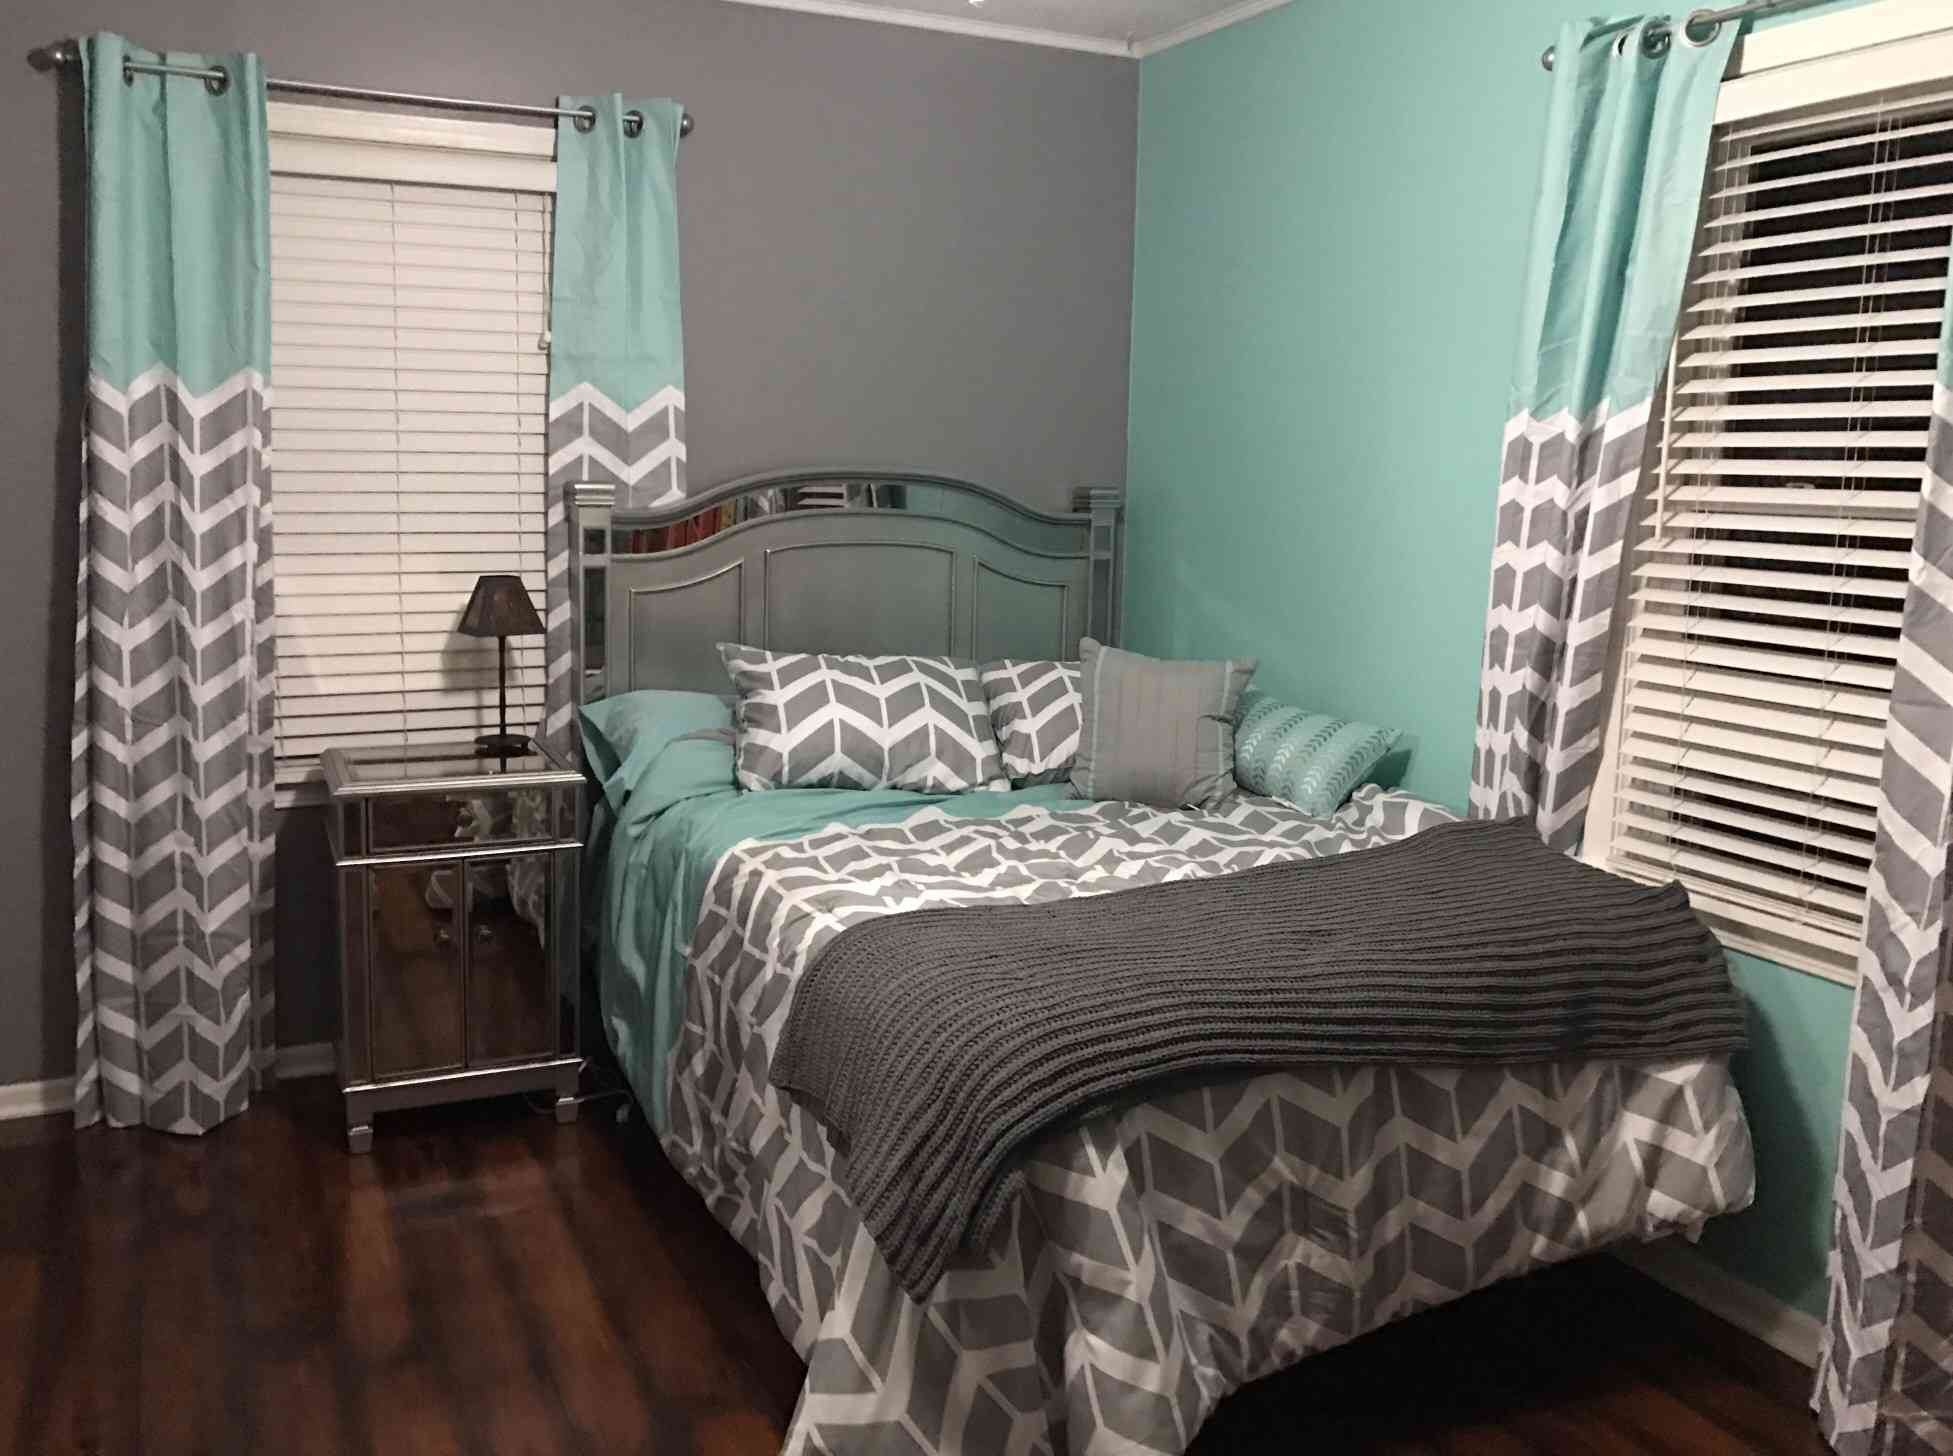 Chevron bedspread and curtains in a gray and teal bedroom.